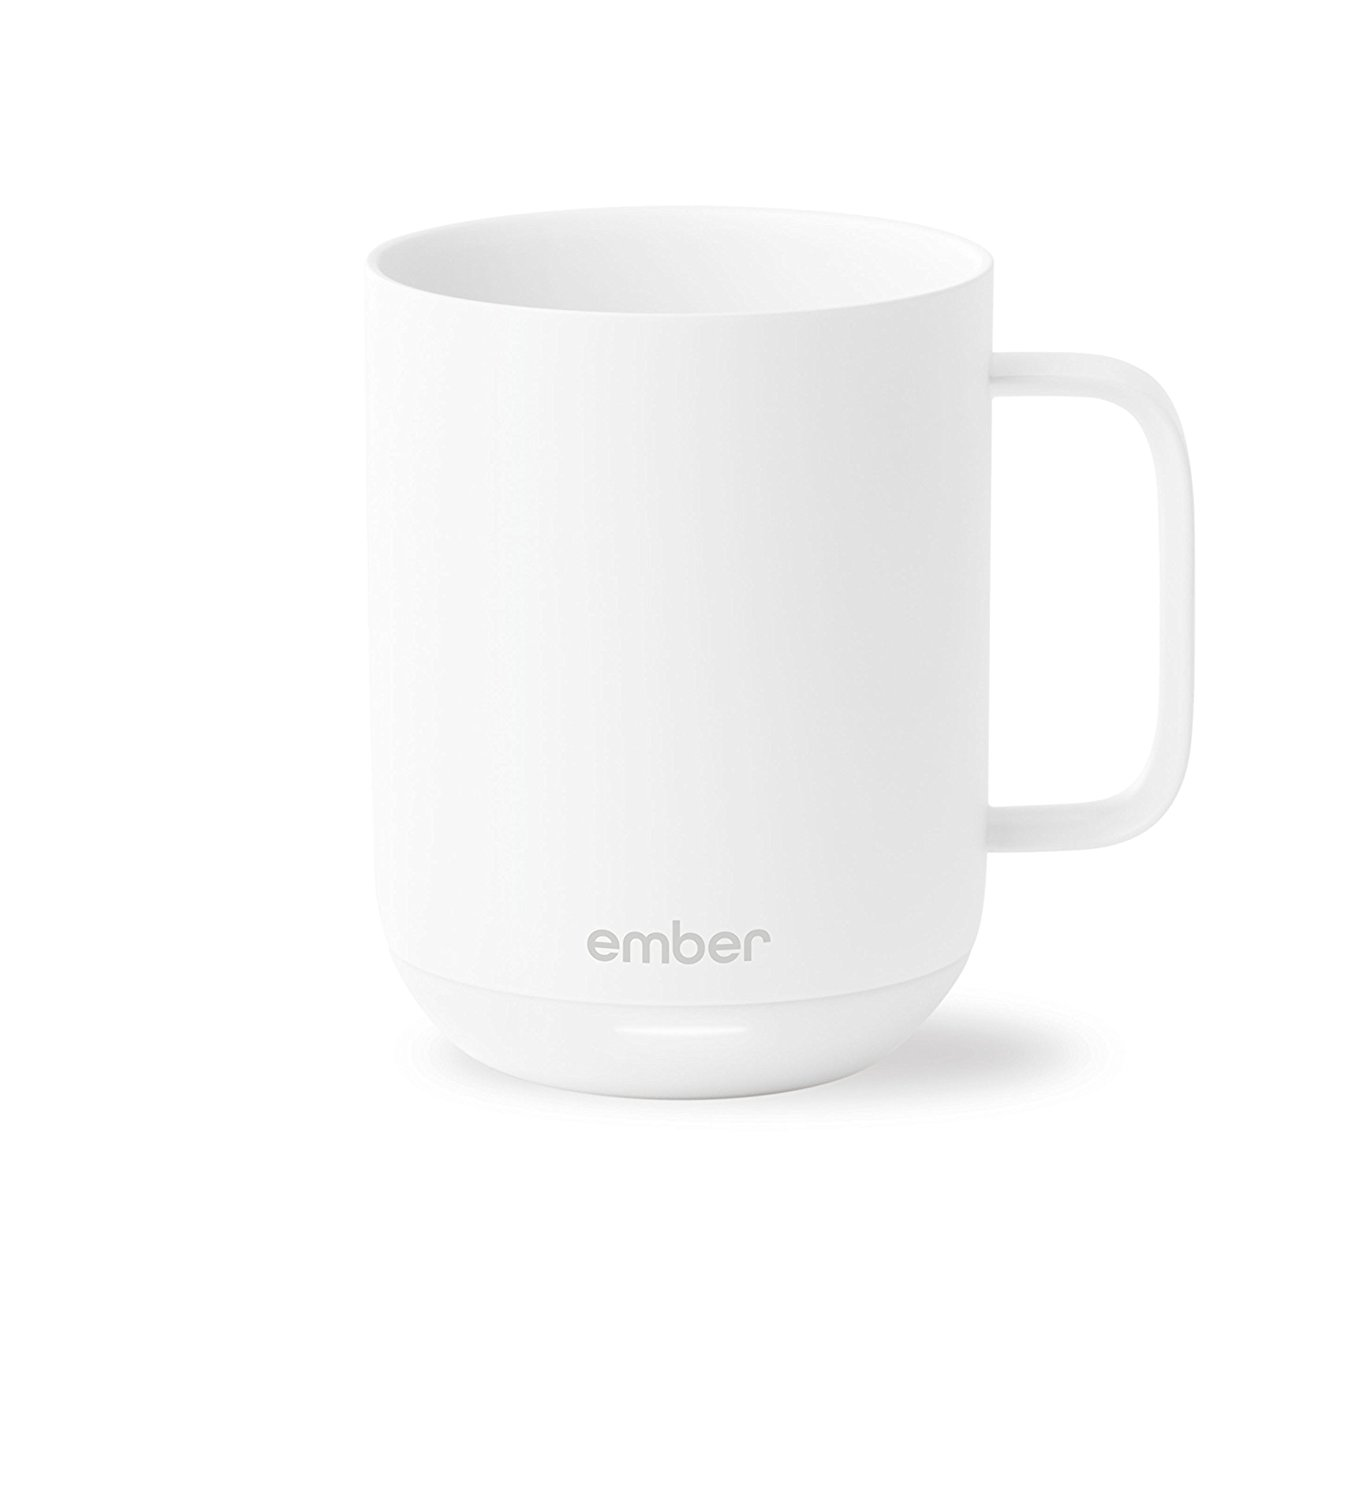 Amazon.com: Ember Temperature Control Ceramic Mug: Kitchen & Dining